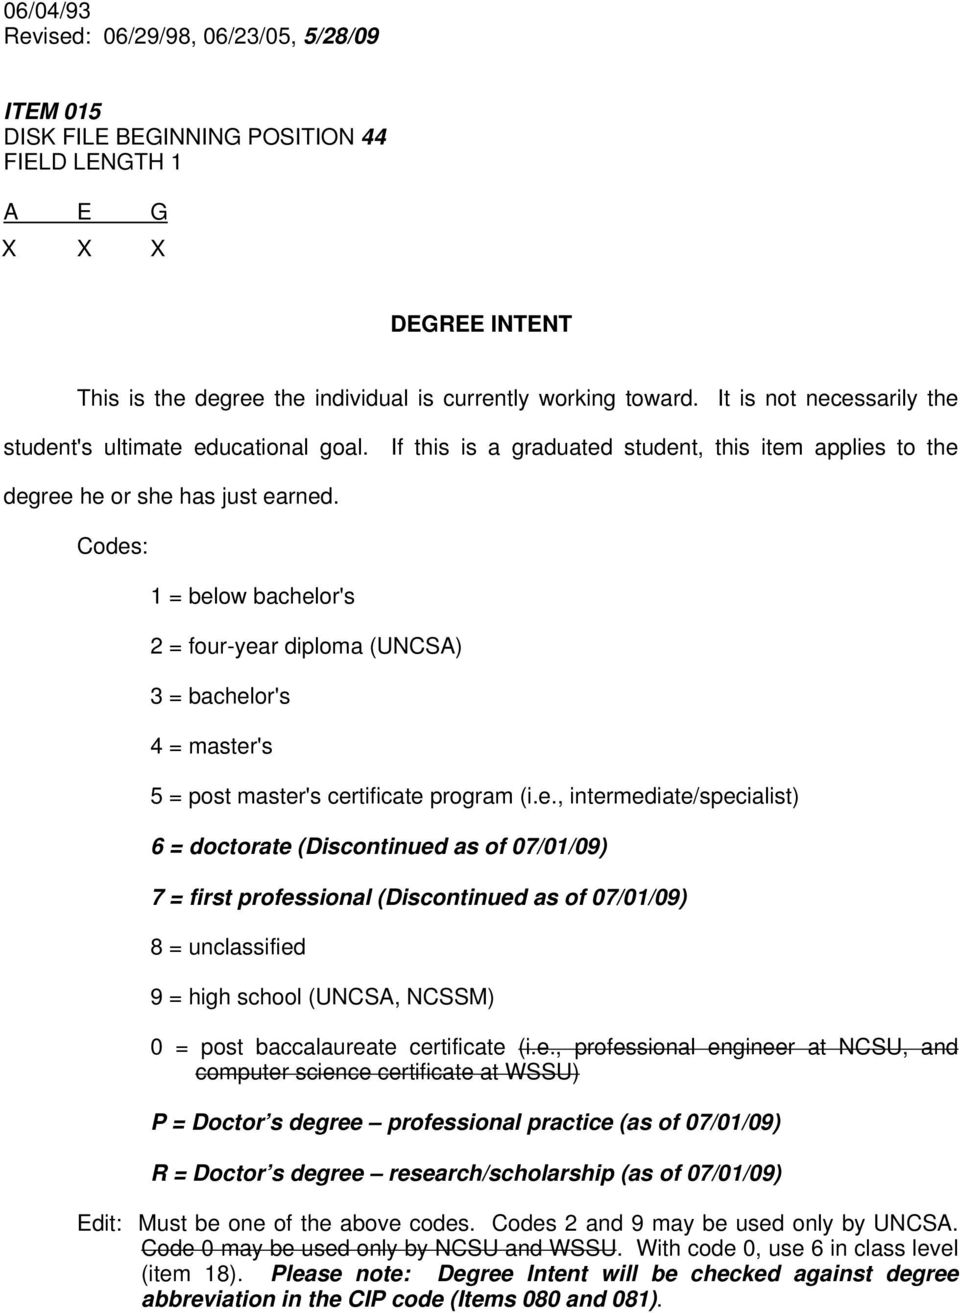 Codes: 1 = below bachelor's 2 = four-year diploma (UNCSA) 3 = bachelor's 4 = master's 5 = post master's certificate program (i.e., intermediate/specialist) 6 = doctorate (Discontinued as of 07/01/09)